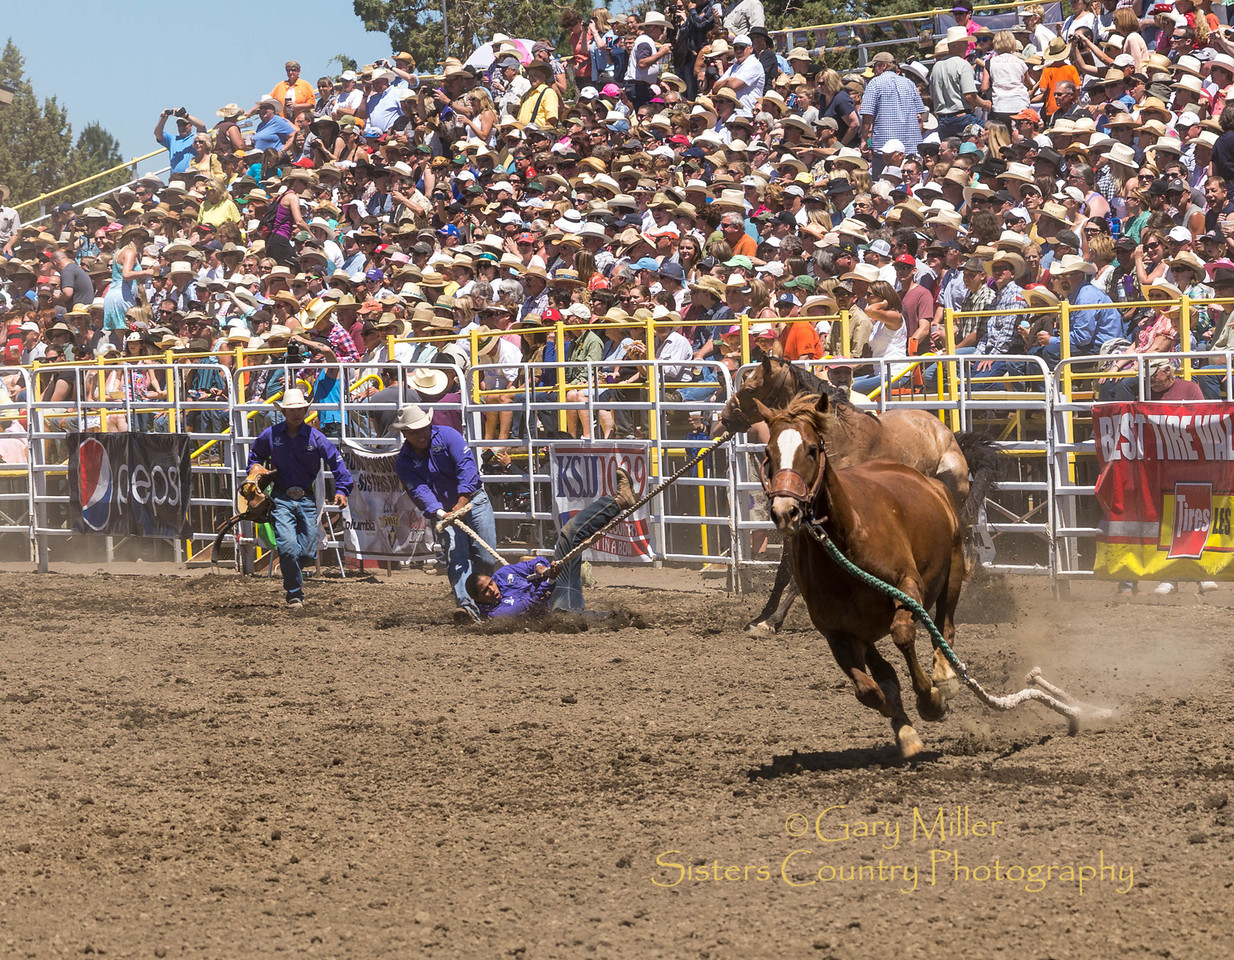 Wild Horse Racing at Saturday afternoon's performance of the 2013 Sisters Rodeo - Sisters, Oregon - Copyright © 2013 Gary N. Miller, Sisters Country Photography